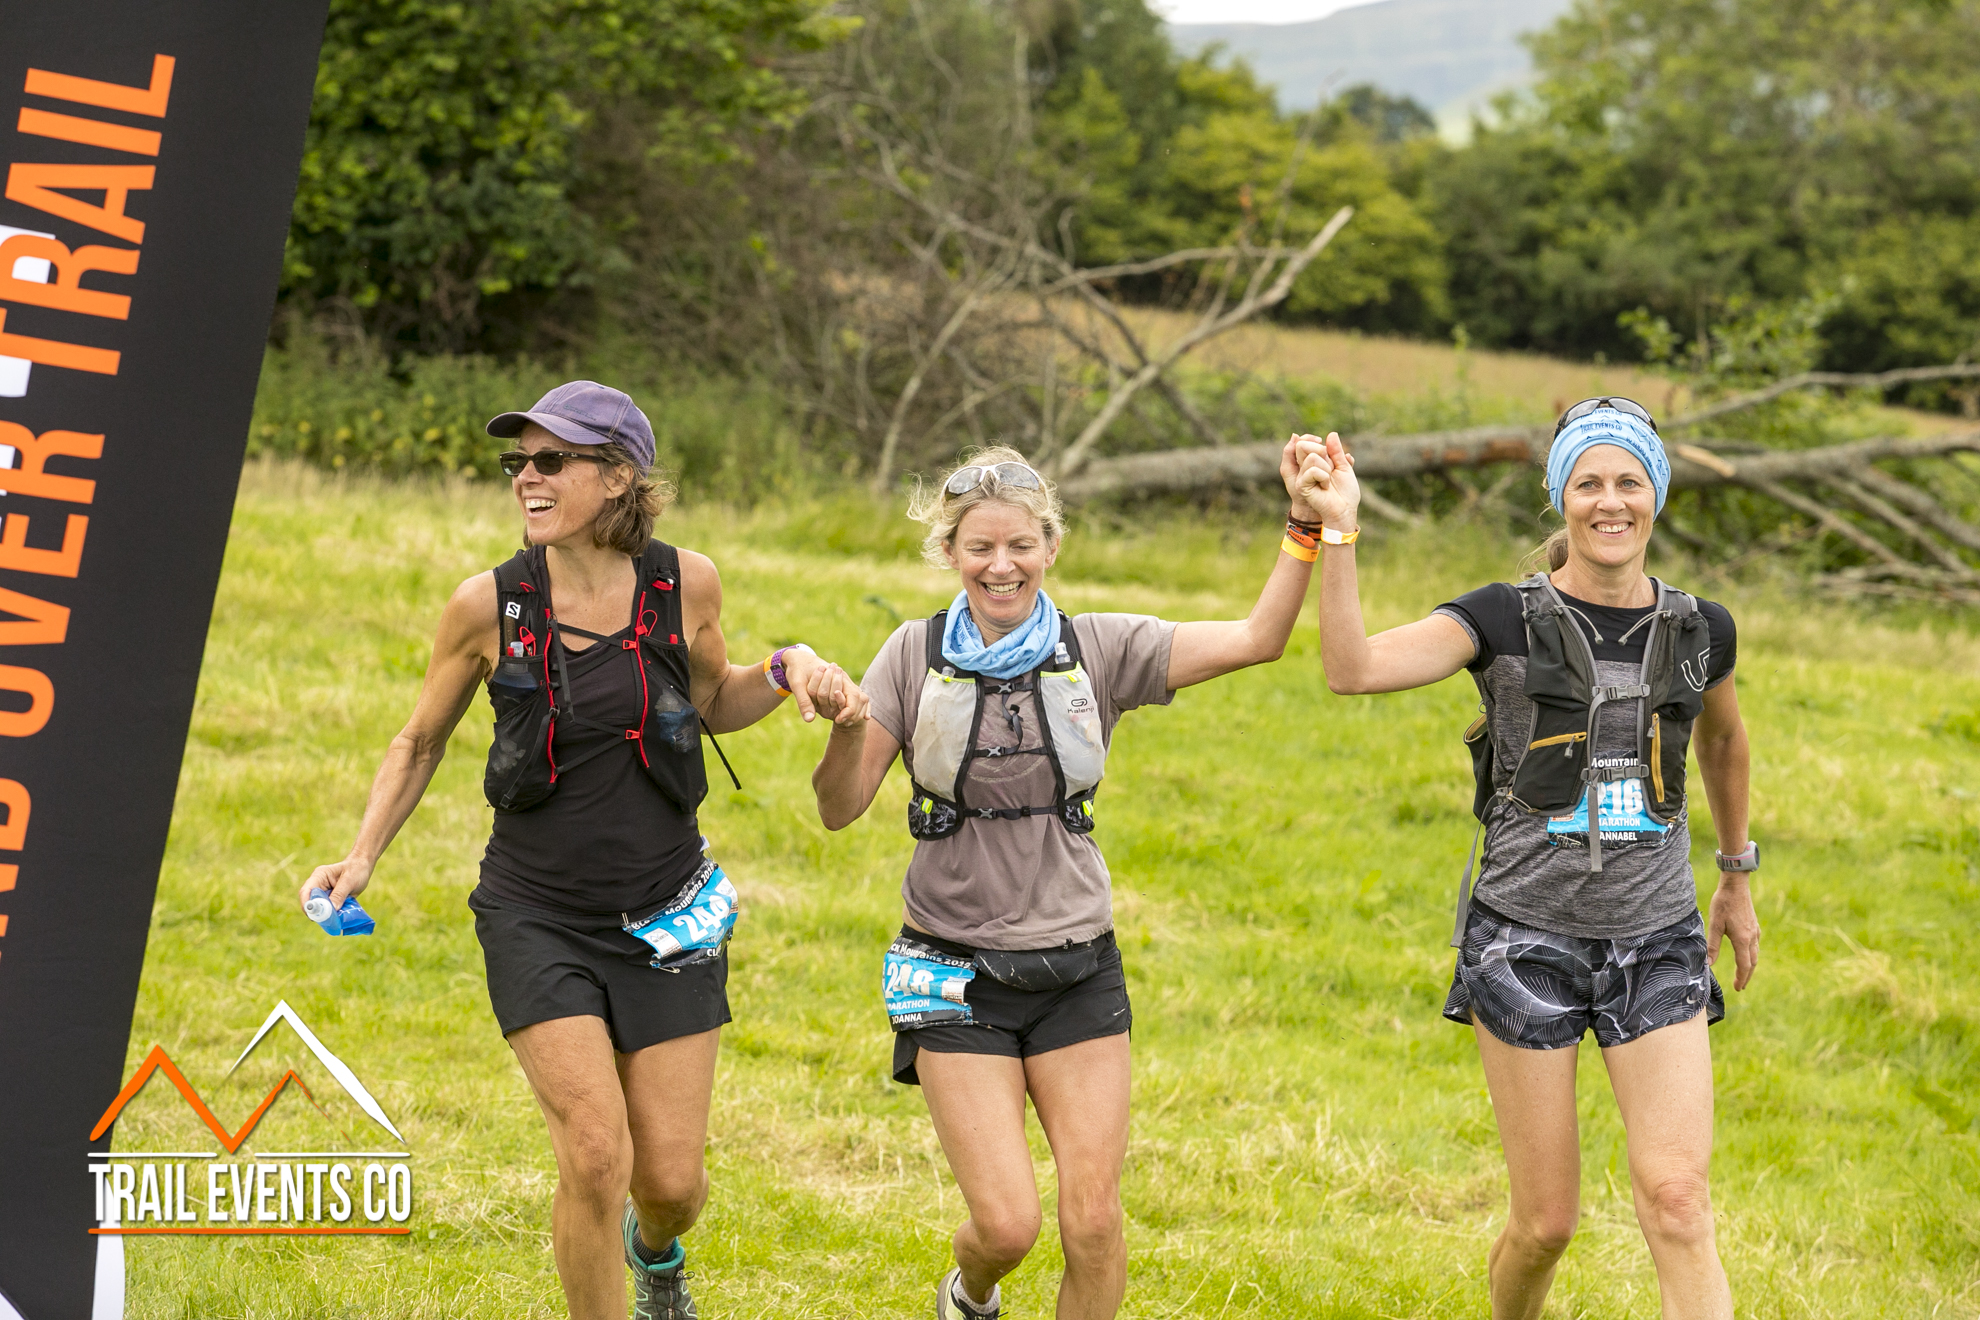 Black Mountains Trail Running Challenge 2021 Day 1 - Trail Events Co